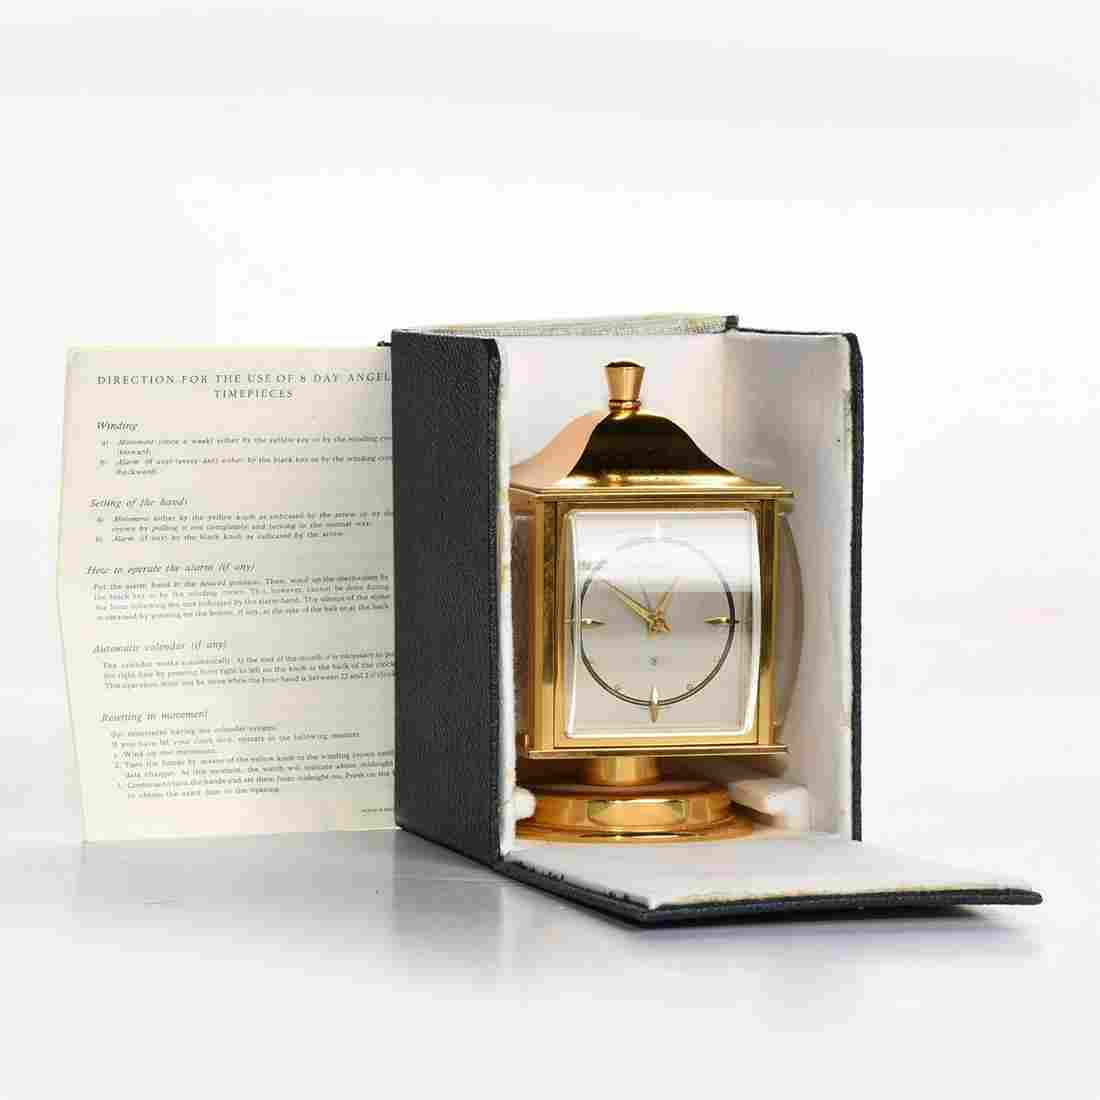 ANGELUS SWISS TABLE CLOCK WITH WEATHER STATION